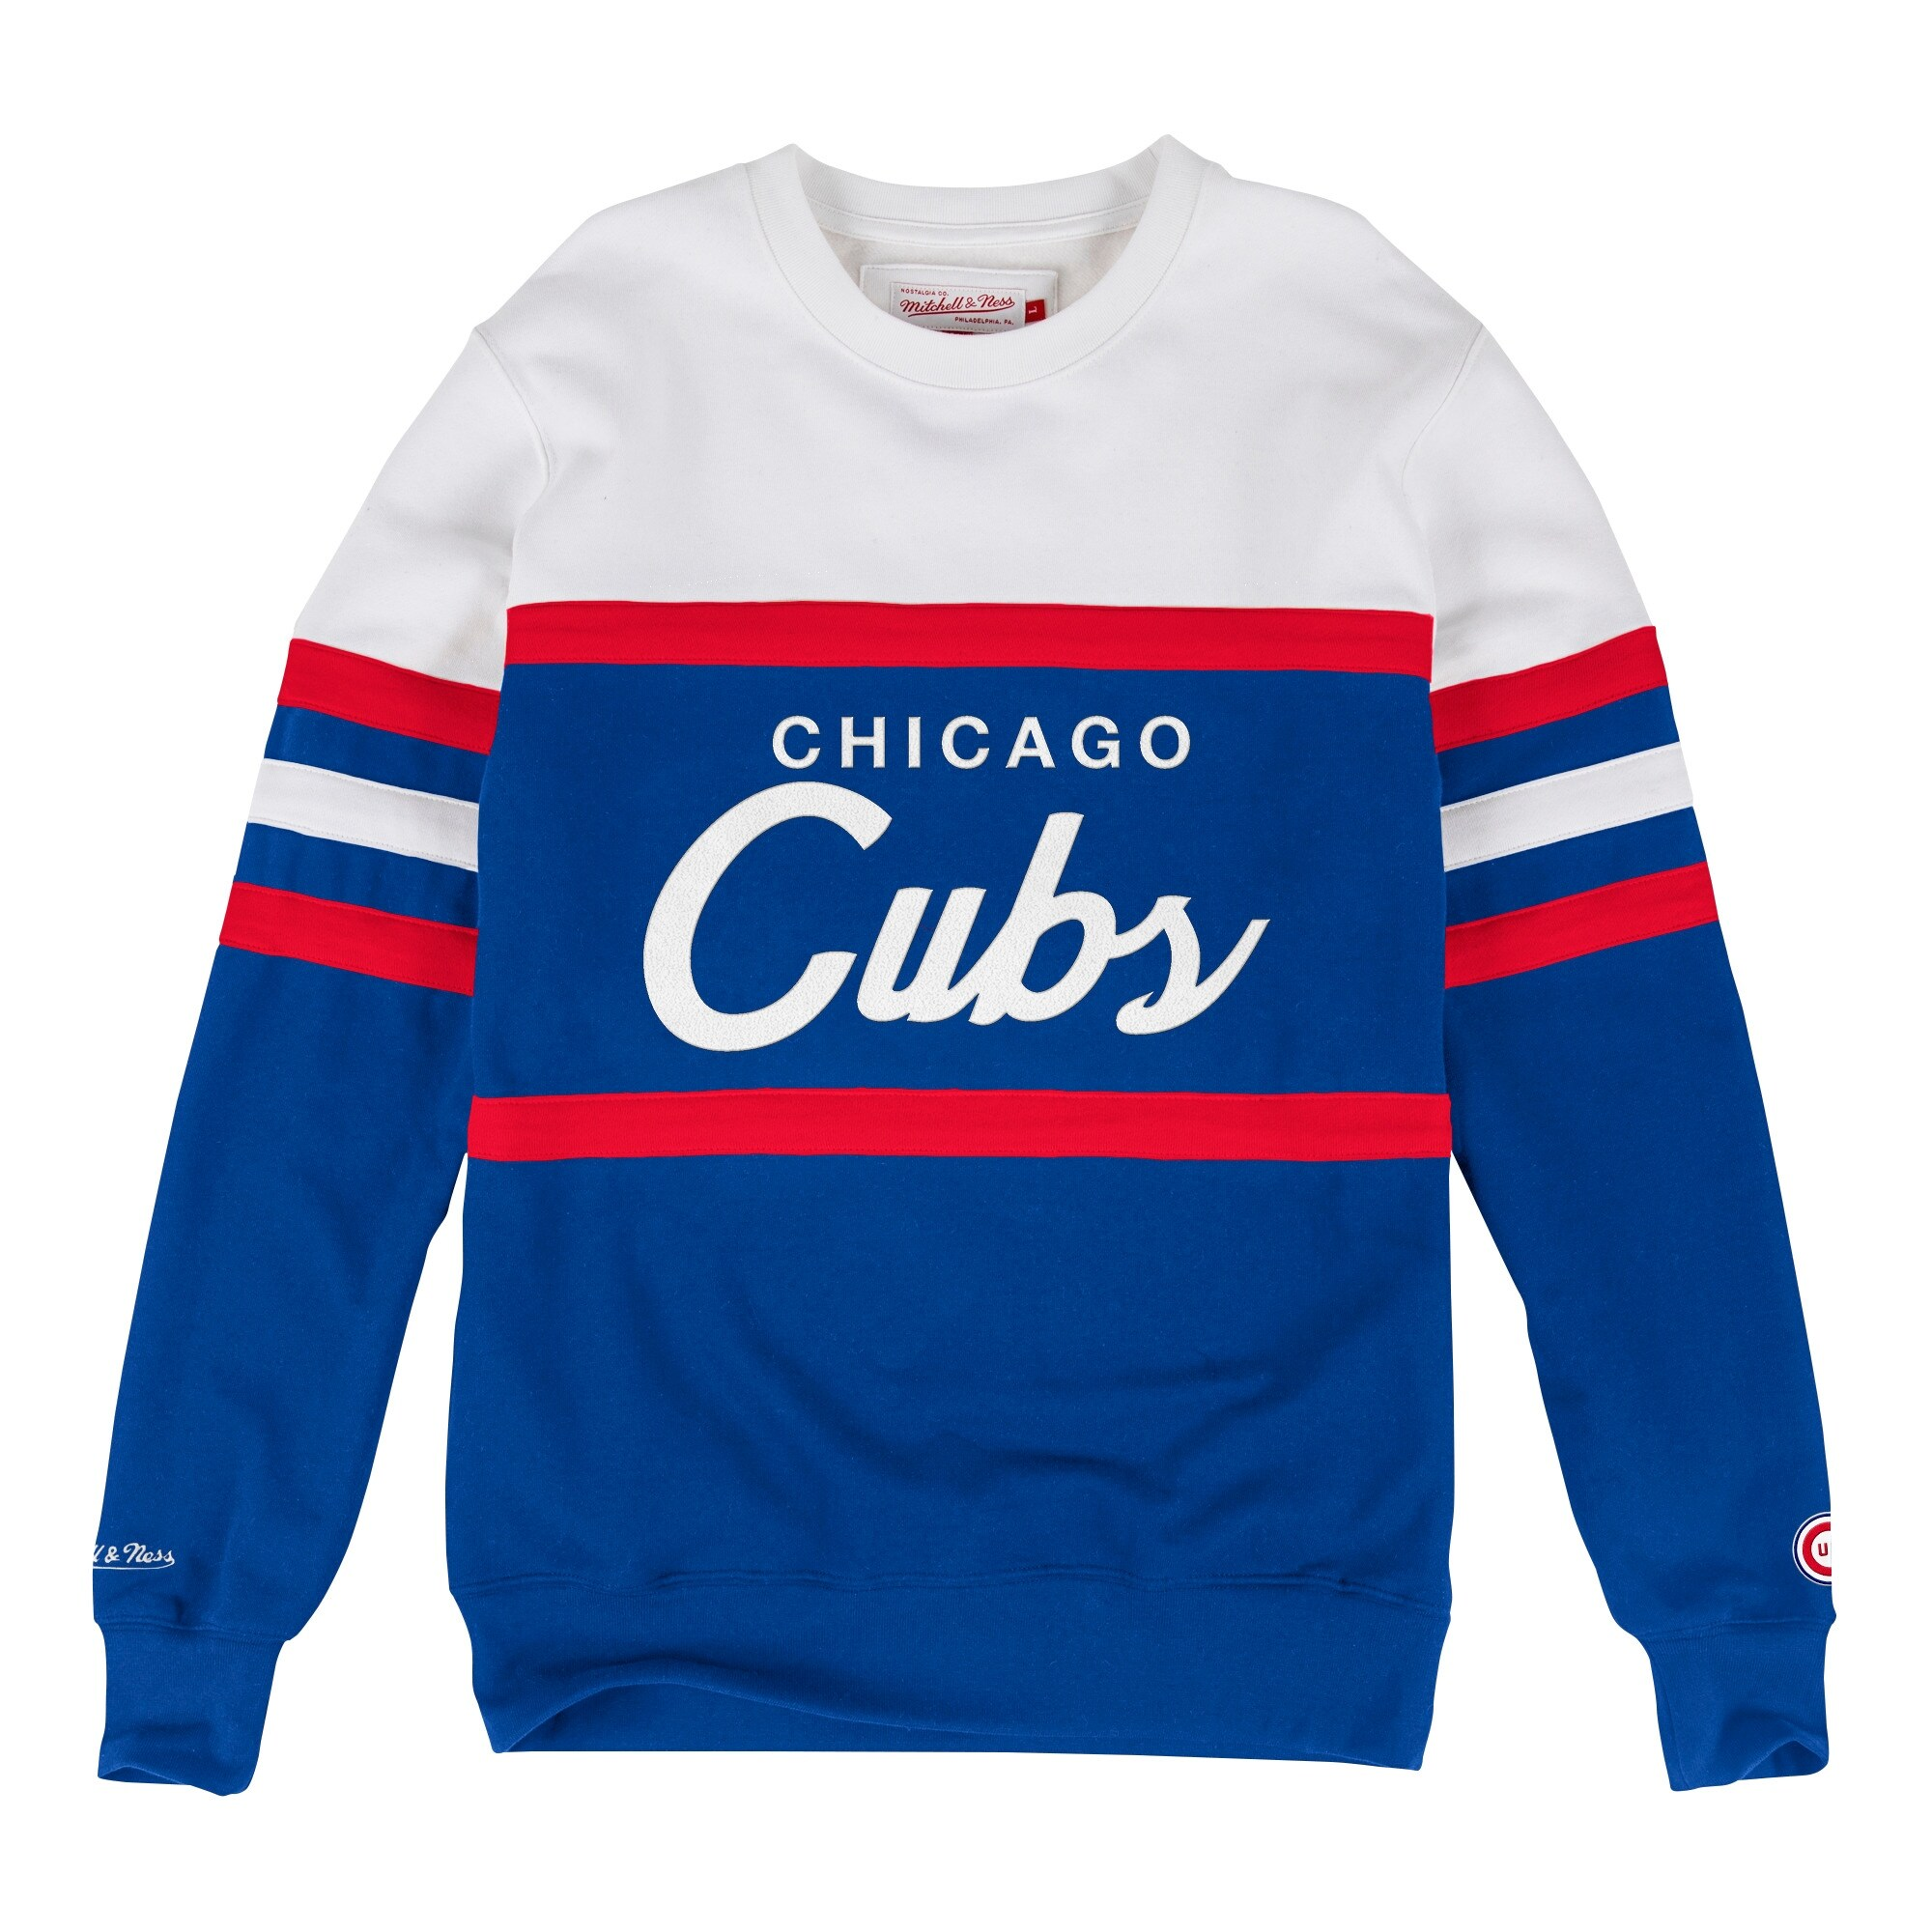 76f38552 Shop Chicago Cubs Head Coach Crew Sweatshirt - Free Shipping Today -  Overstock - 18681977